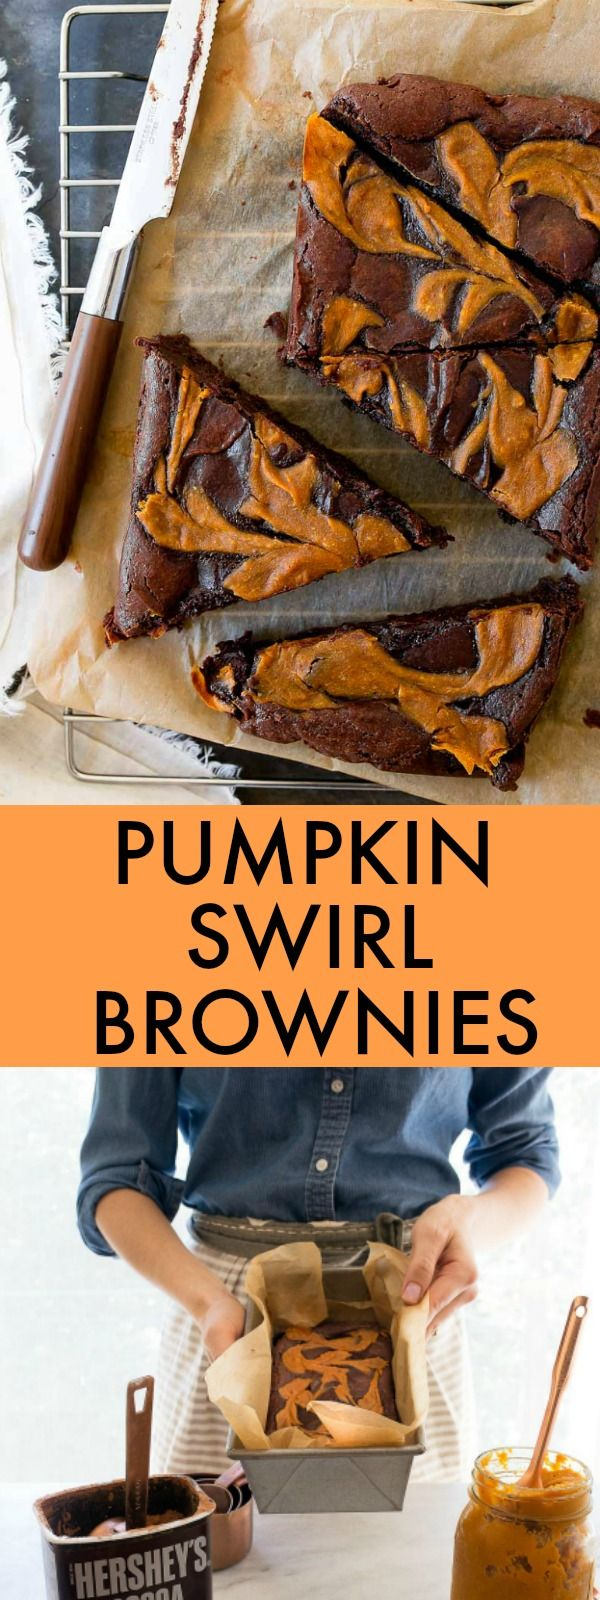 Pumpkin brownies for two! A small batch of brownies for 2 or 3 people with pumpkin swirled in! Brownies made in a loaf pan to serve two.